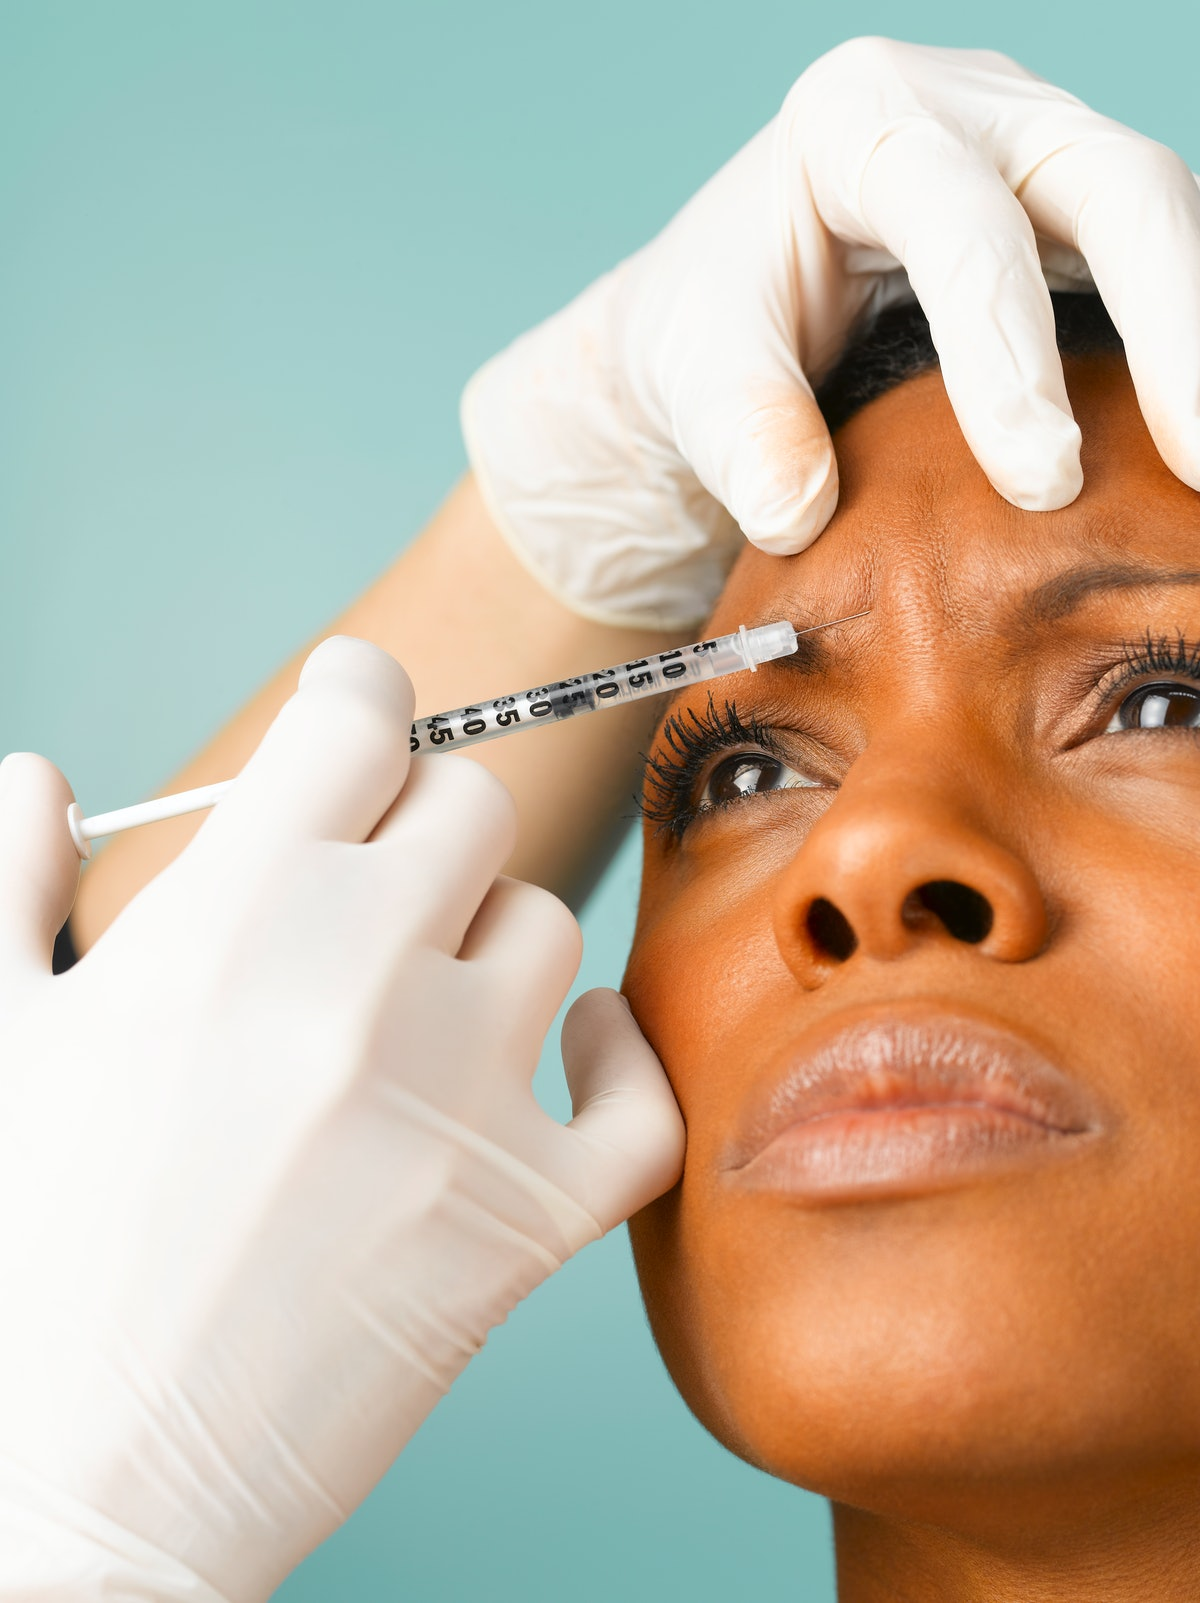 Woman getting a needle injection in forehead